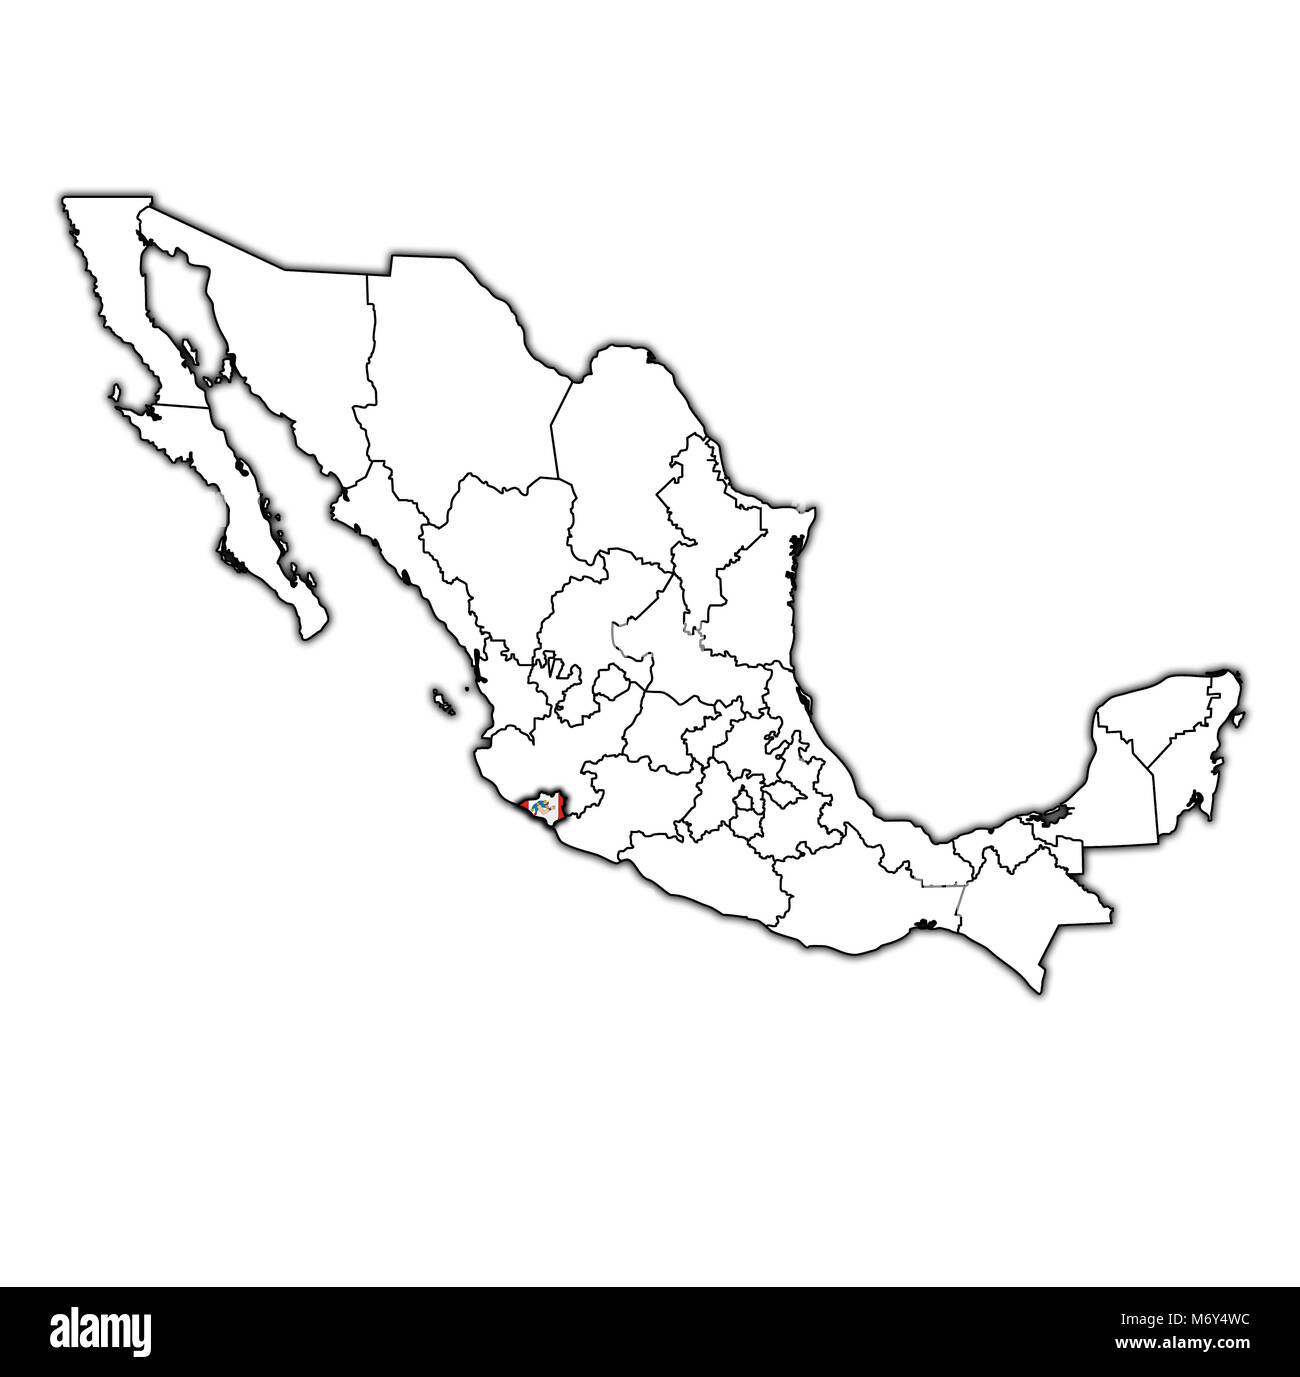 emblem of colima state on map with administrative divisions and borders of Mexico - Stock Image